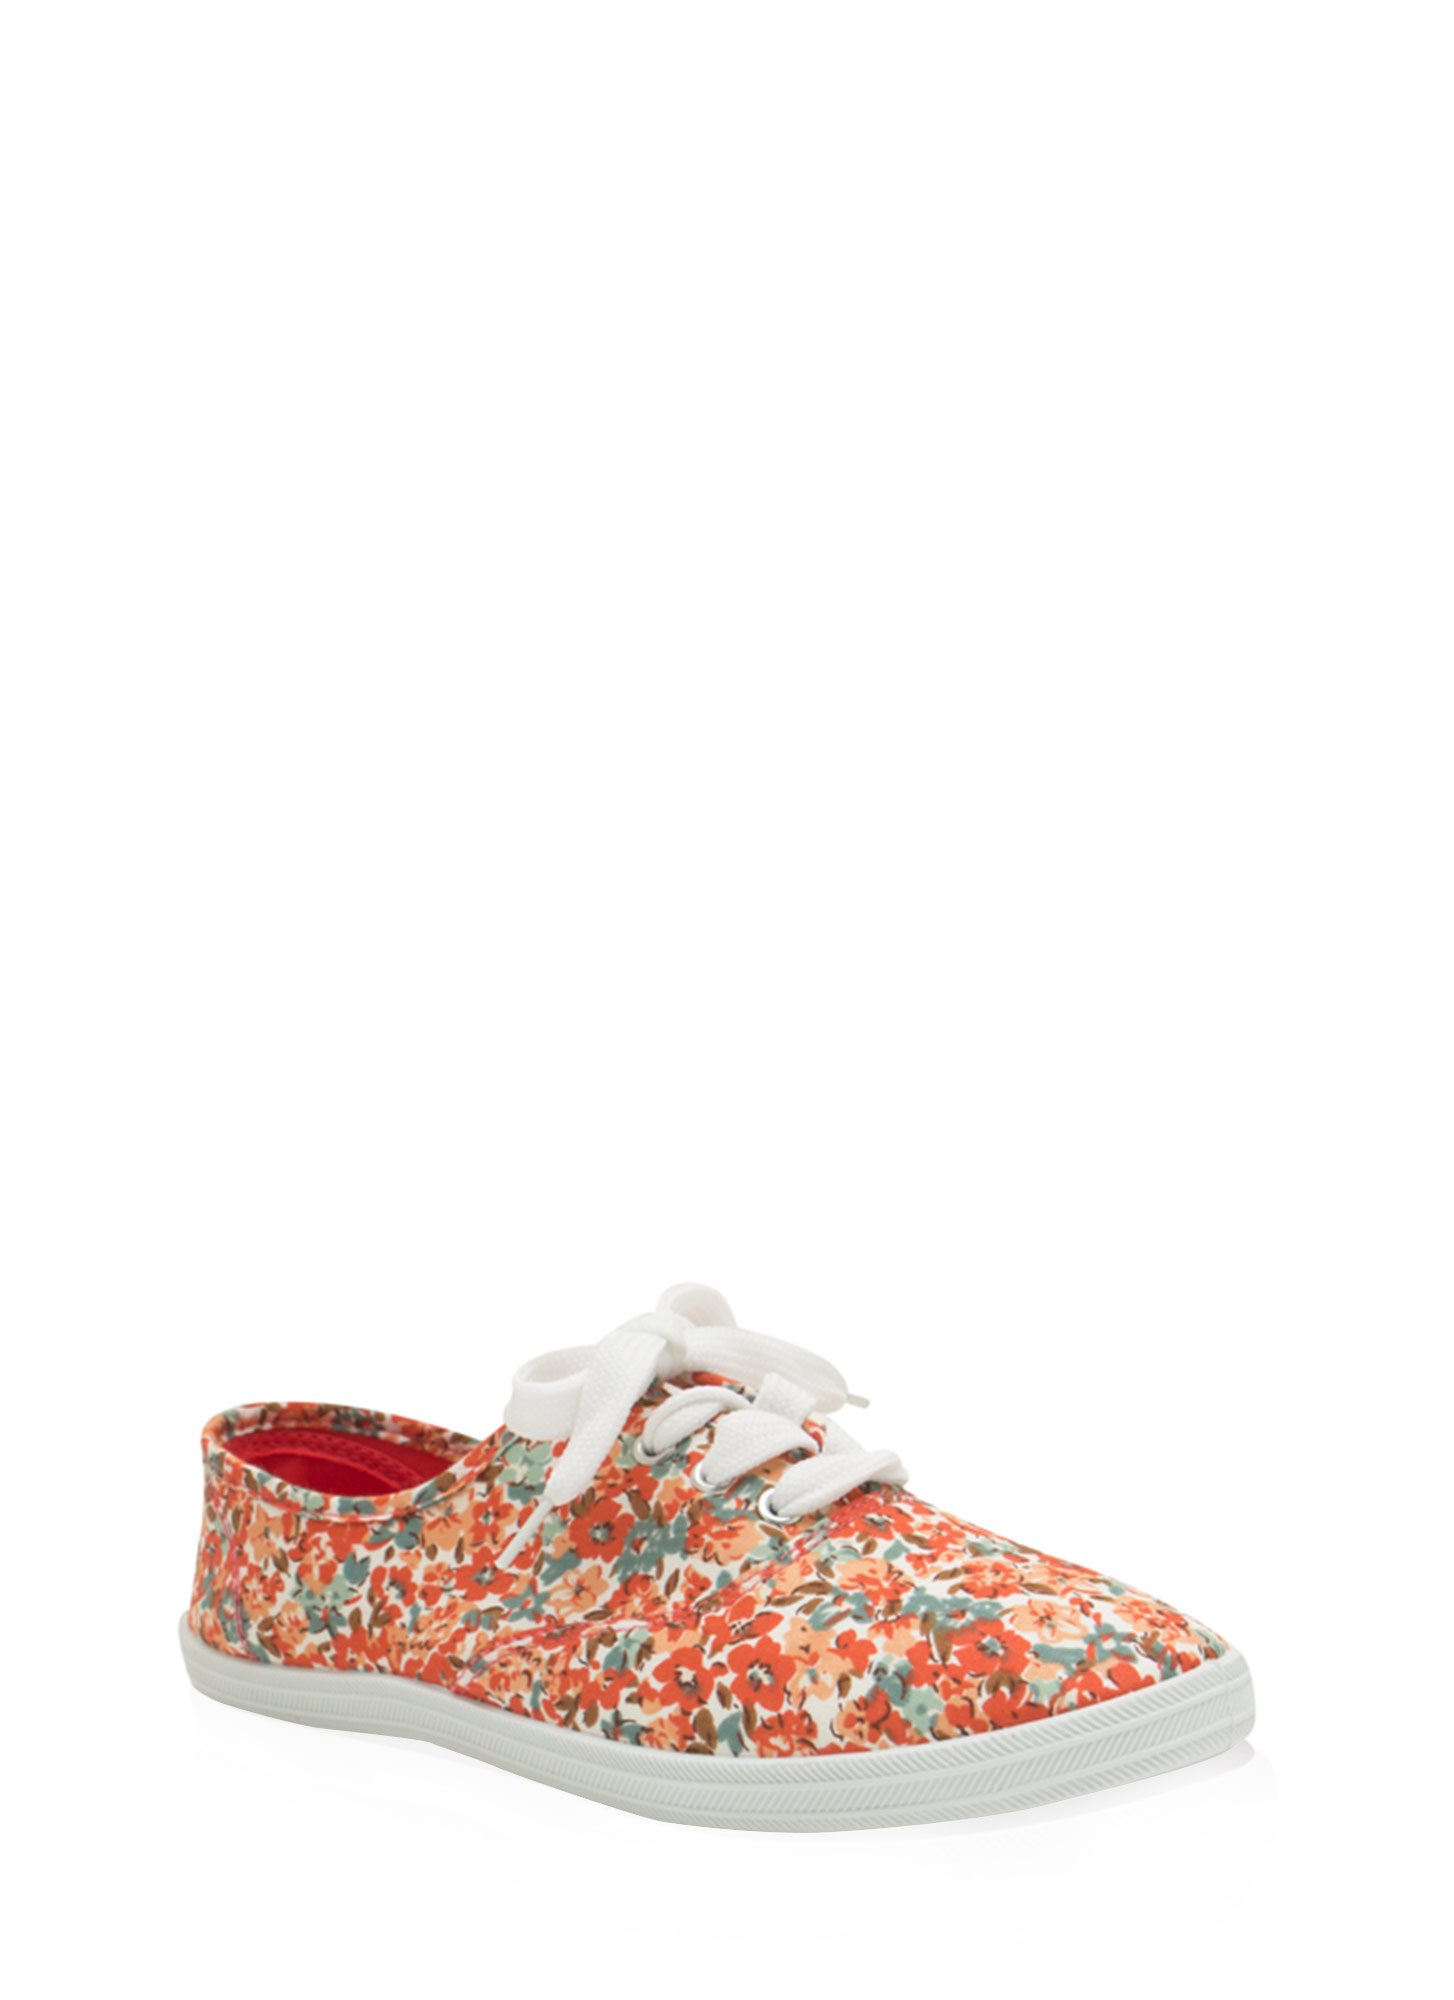 Floral Daze Lace-Up Sneakers CORALMULTI